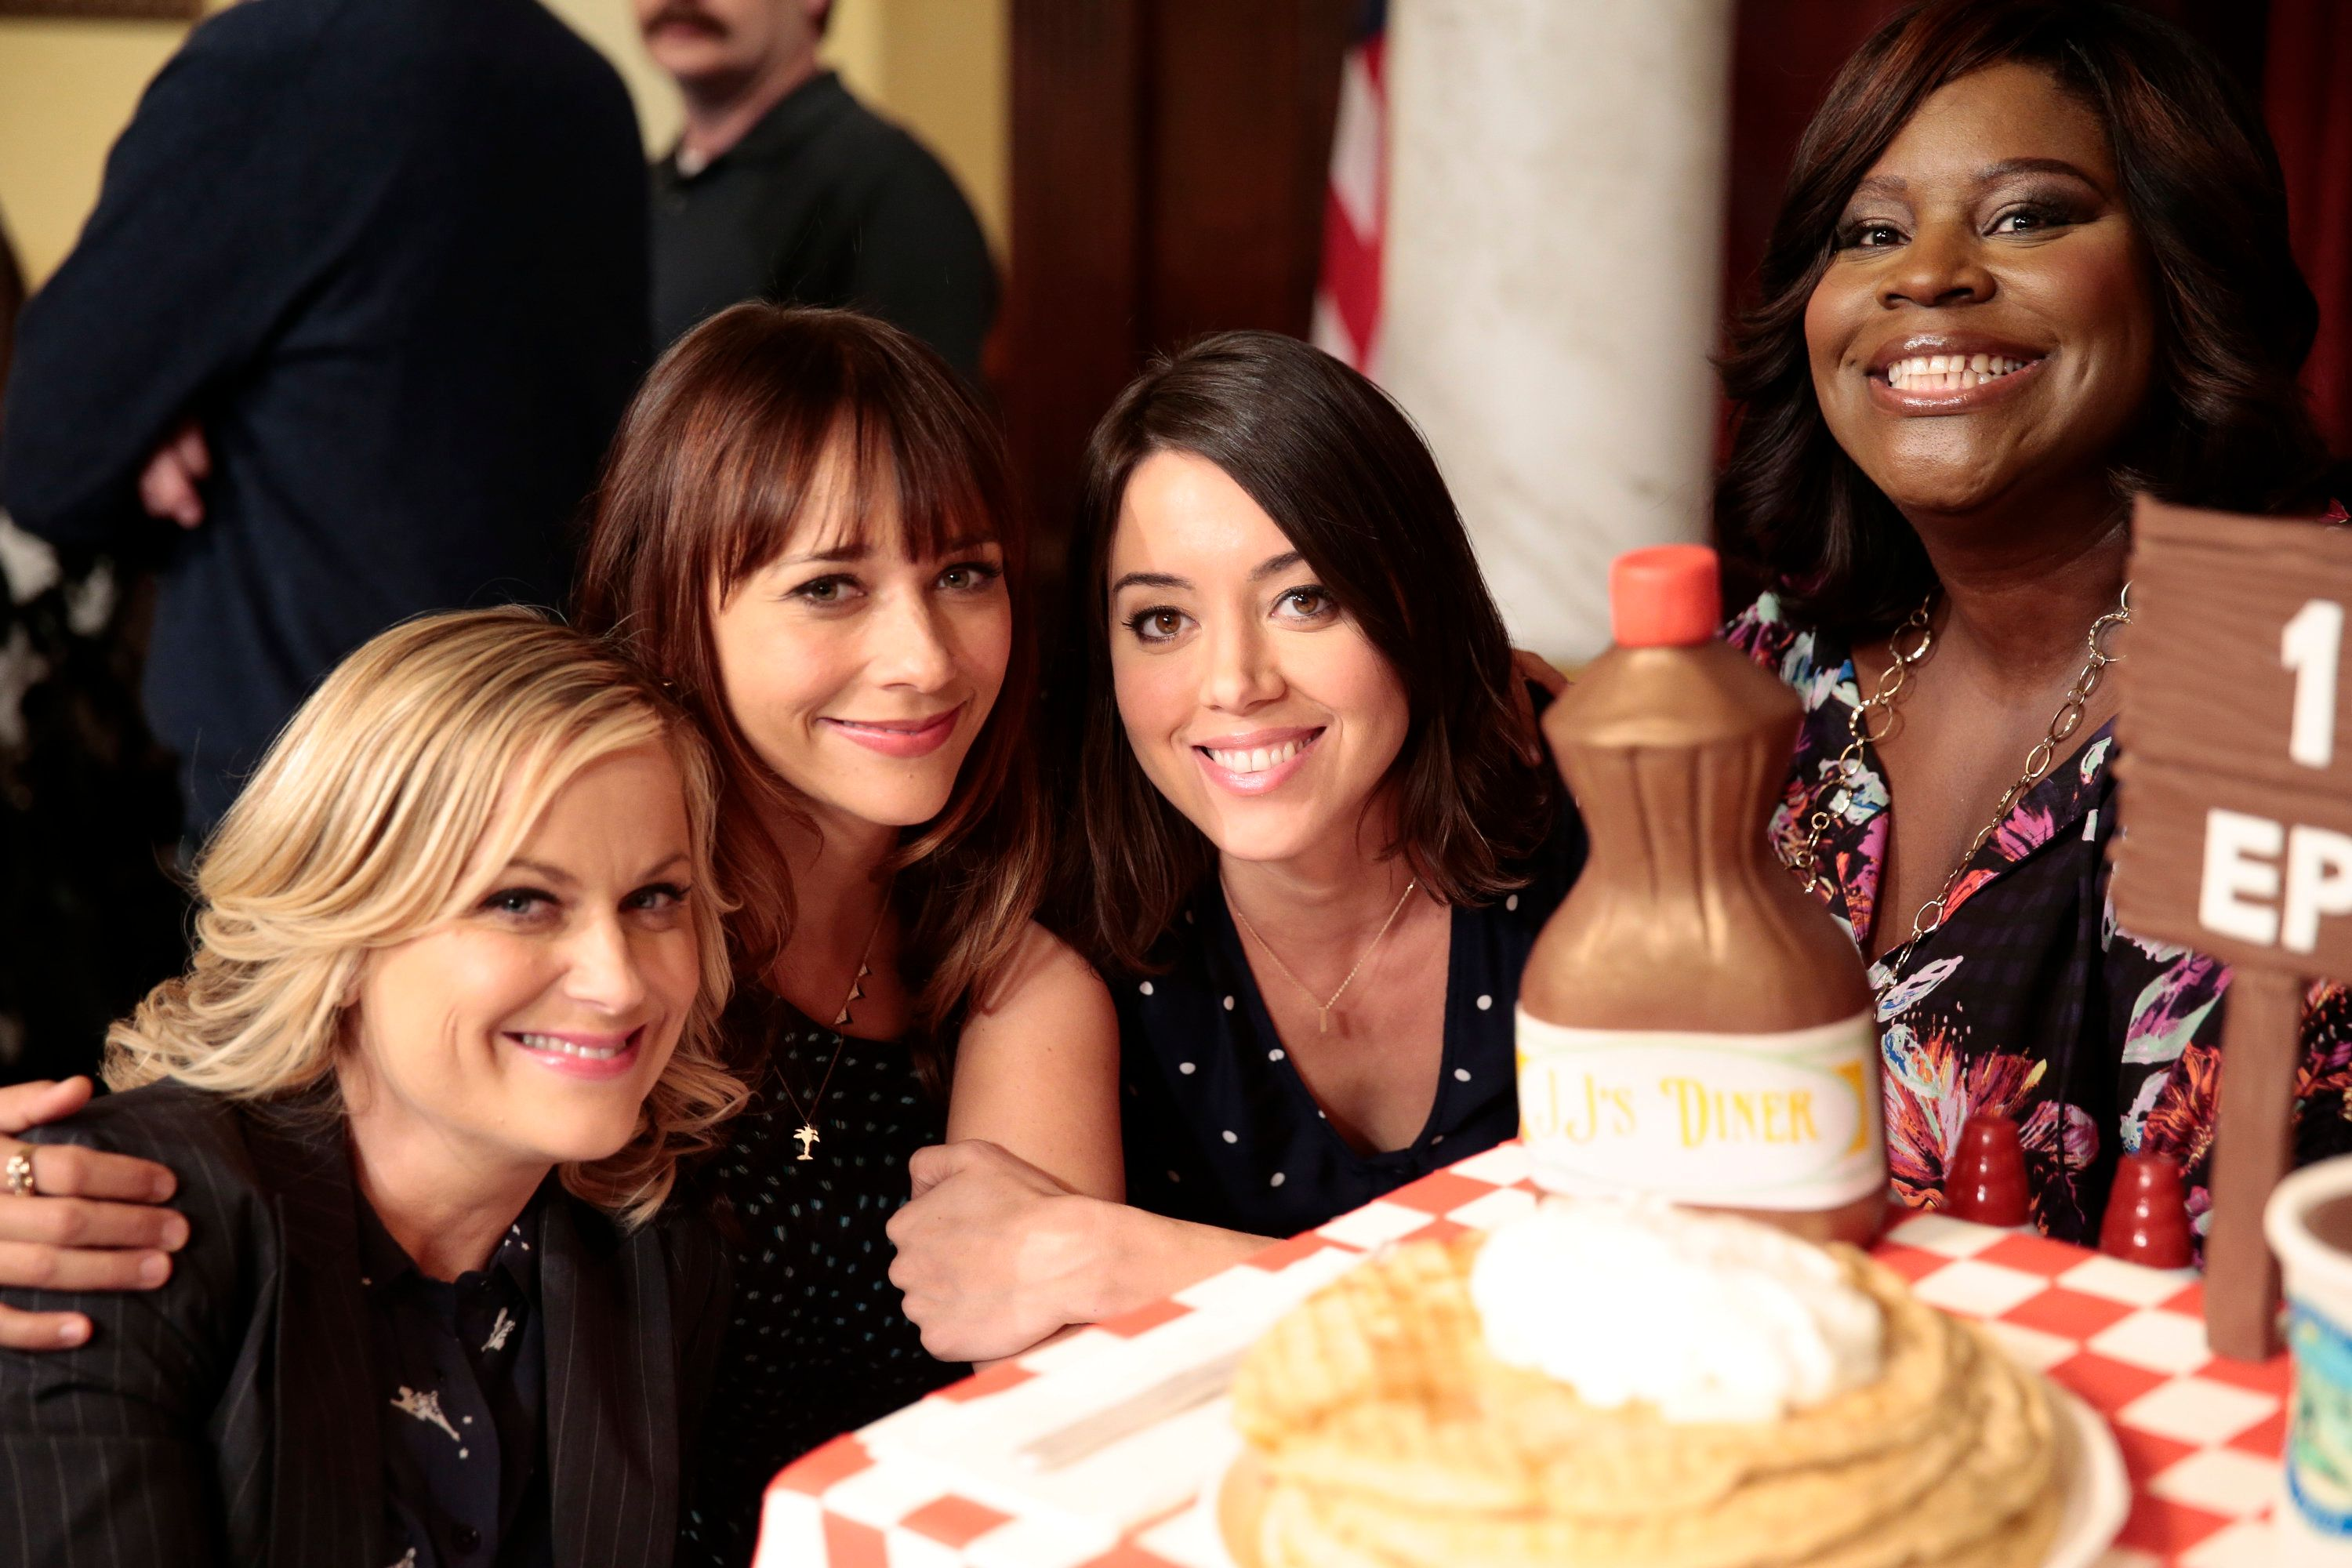 'Parks and Recreation' Women Reunite for Galentine's Day in New Photo